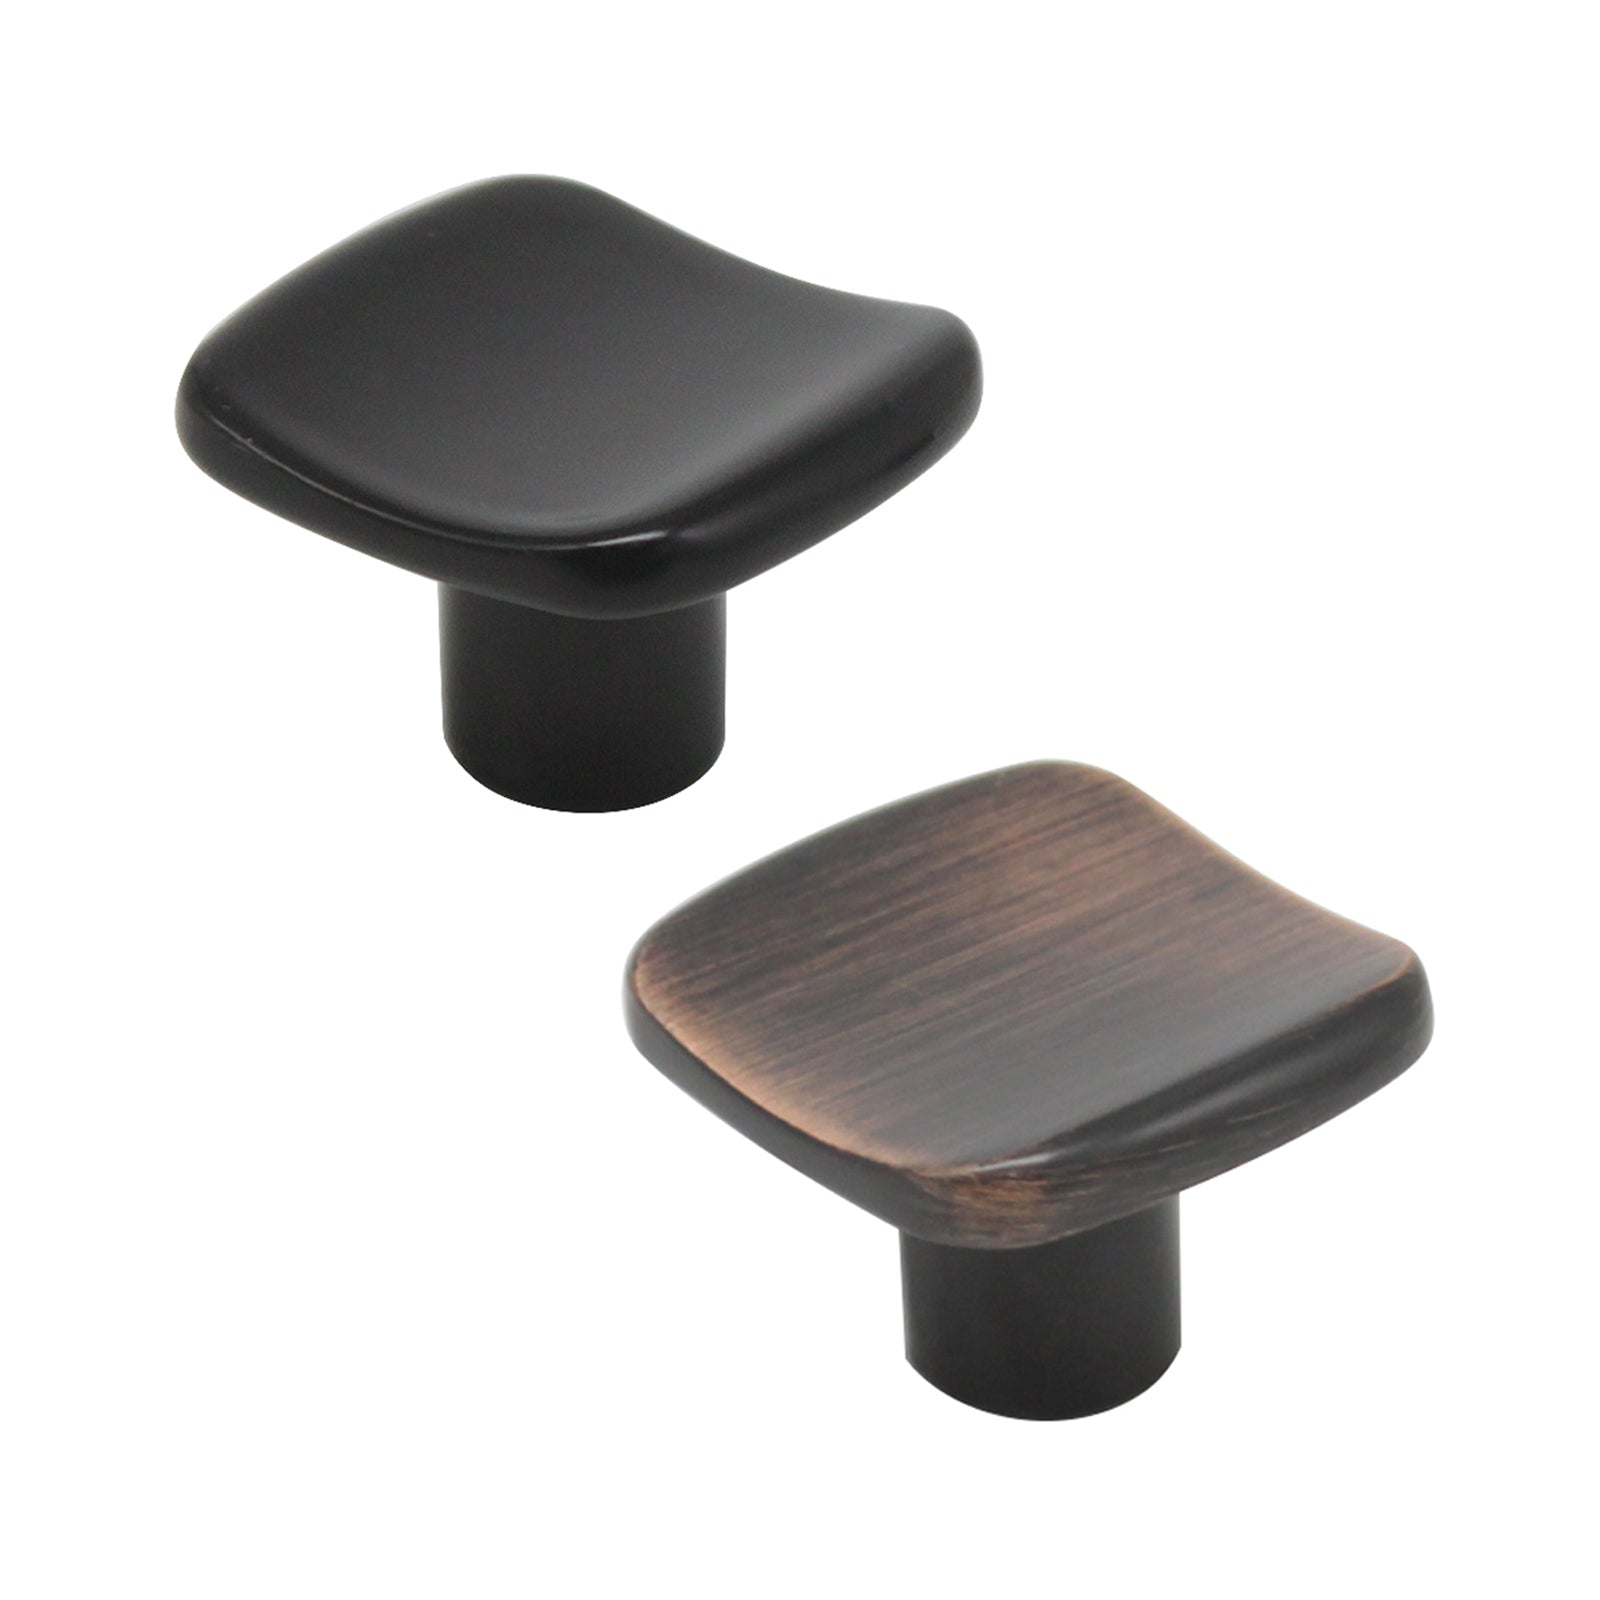 Square Concave Cabinet Knobs 1 3 16inch Oil Rubeed Bronze